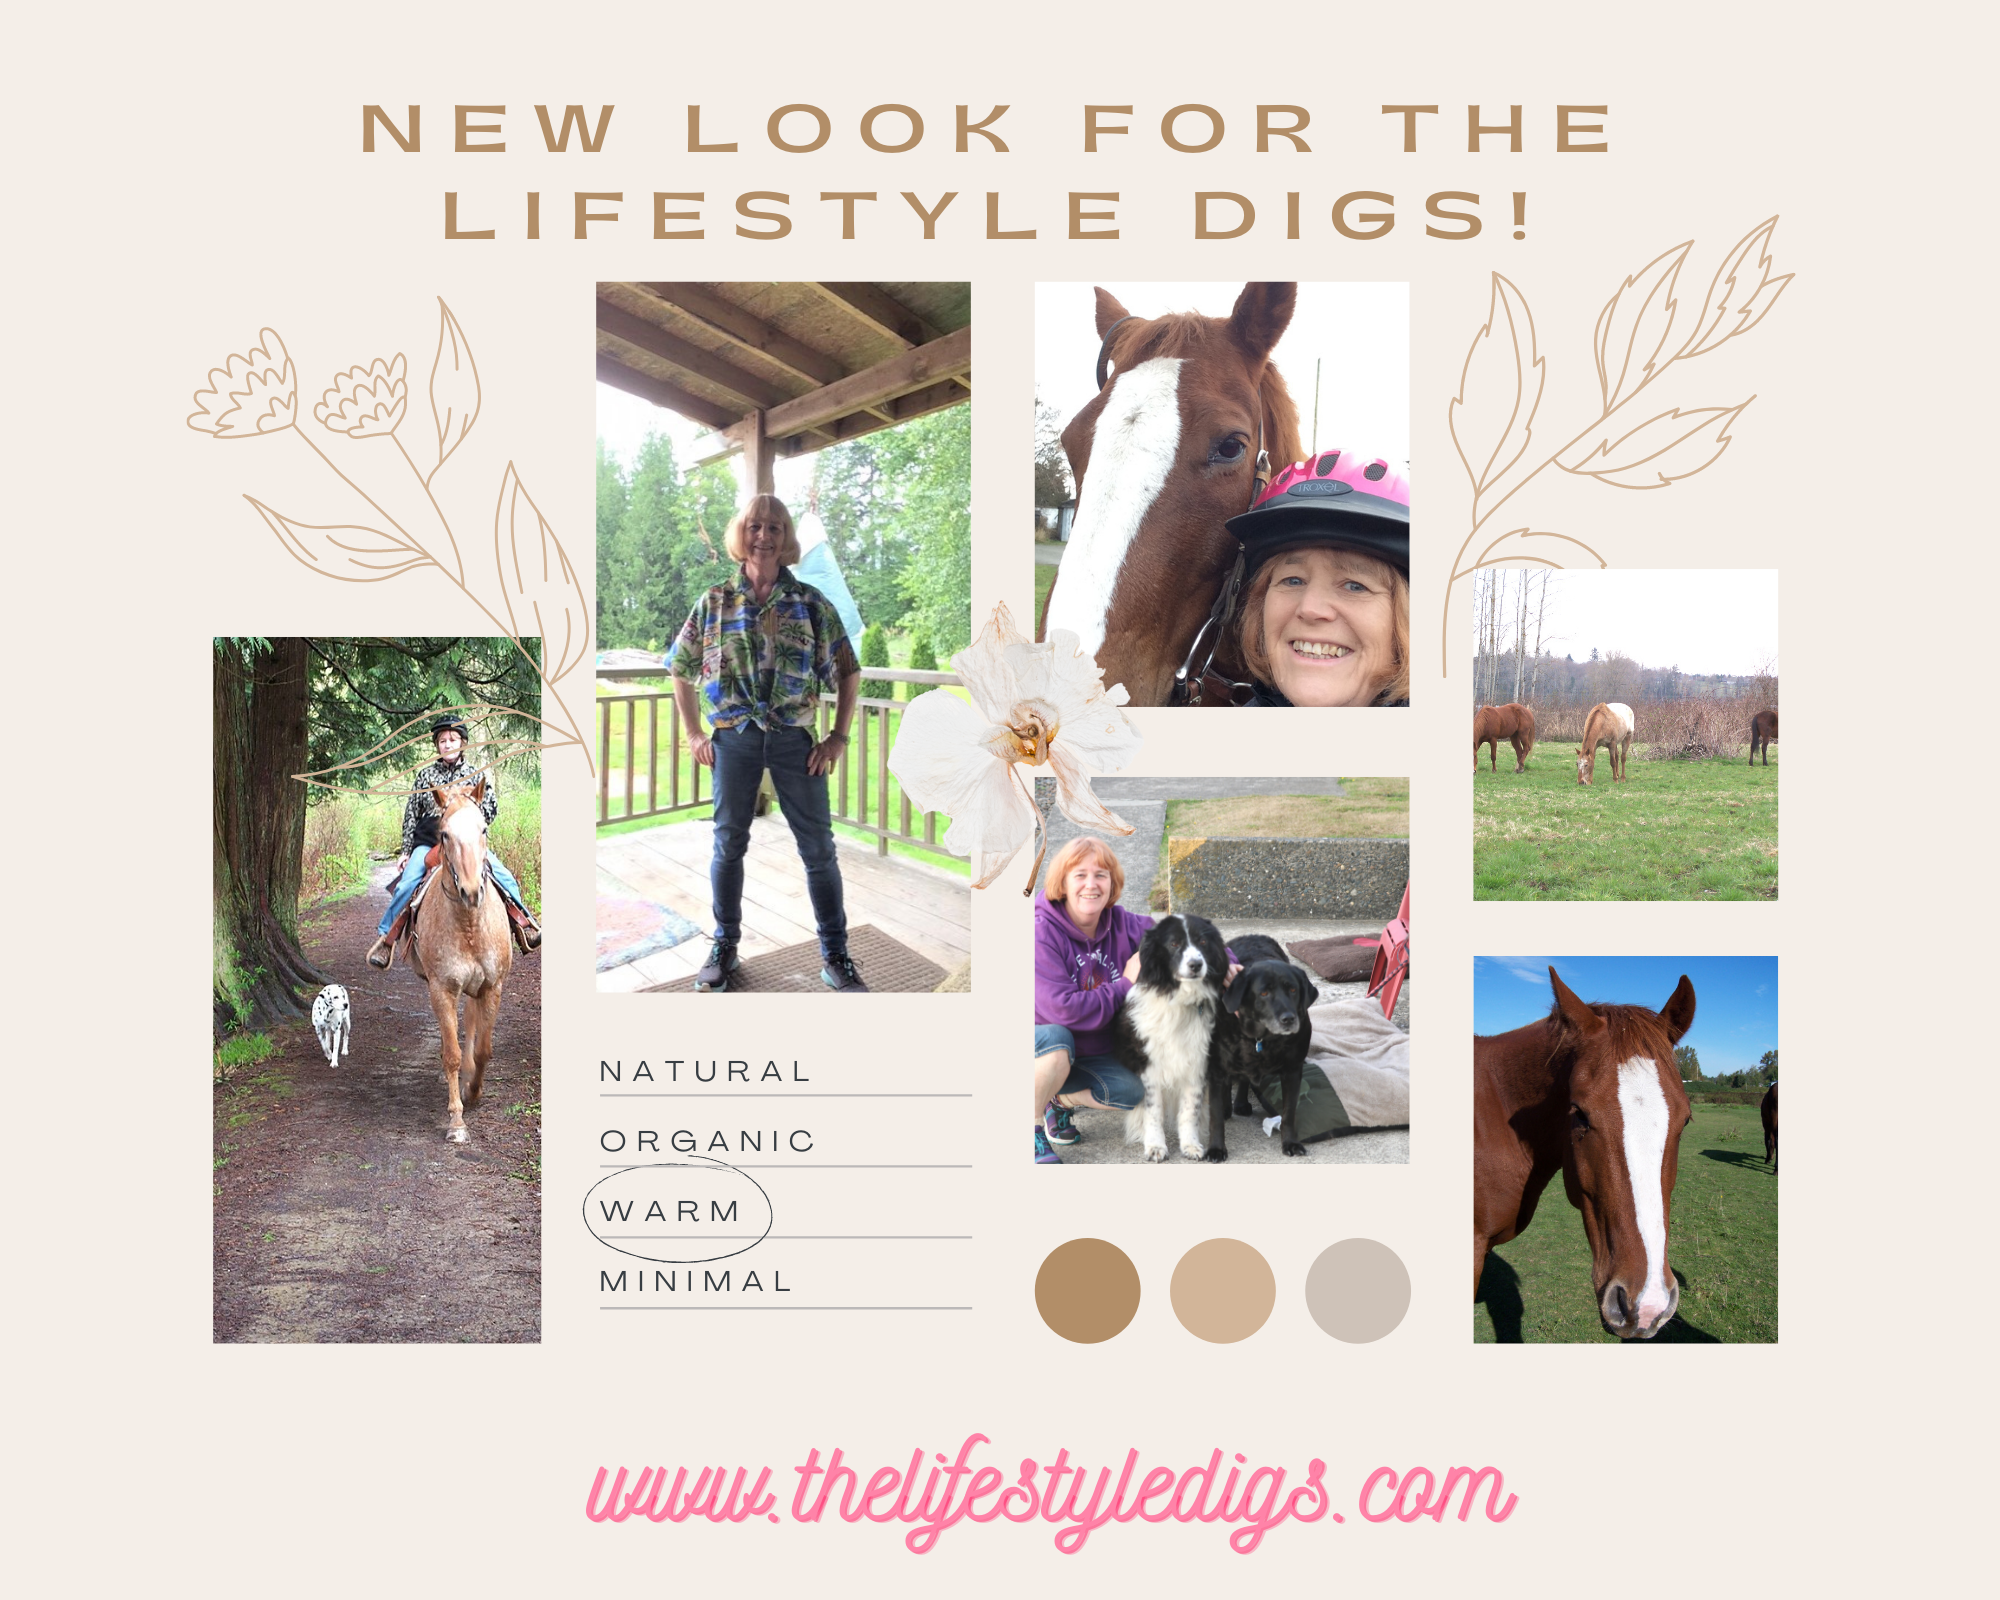 New Look for The Lifestyle Digs!